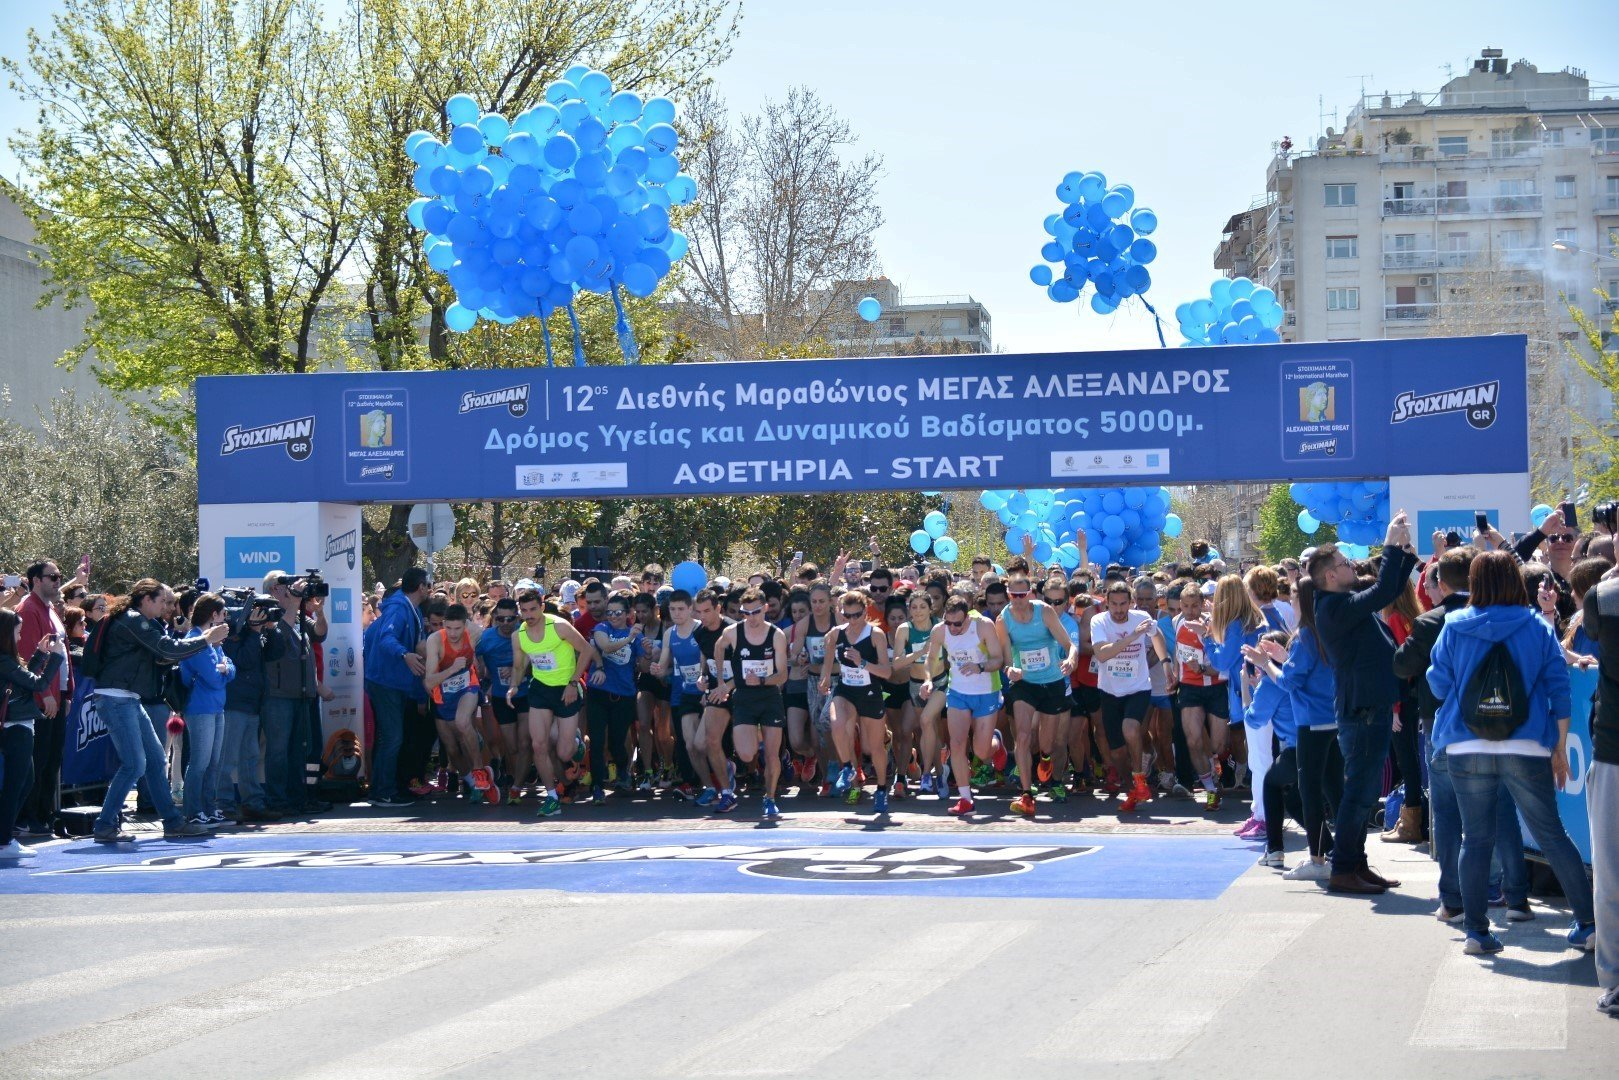 """Magical images and moments in the official video of Stoiximan.gr 12th Int' Marathon """"ALEXANDER THE GREAT"""""""